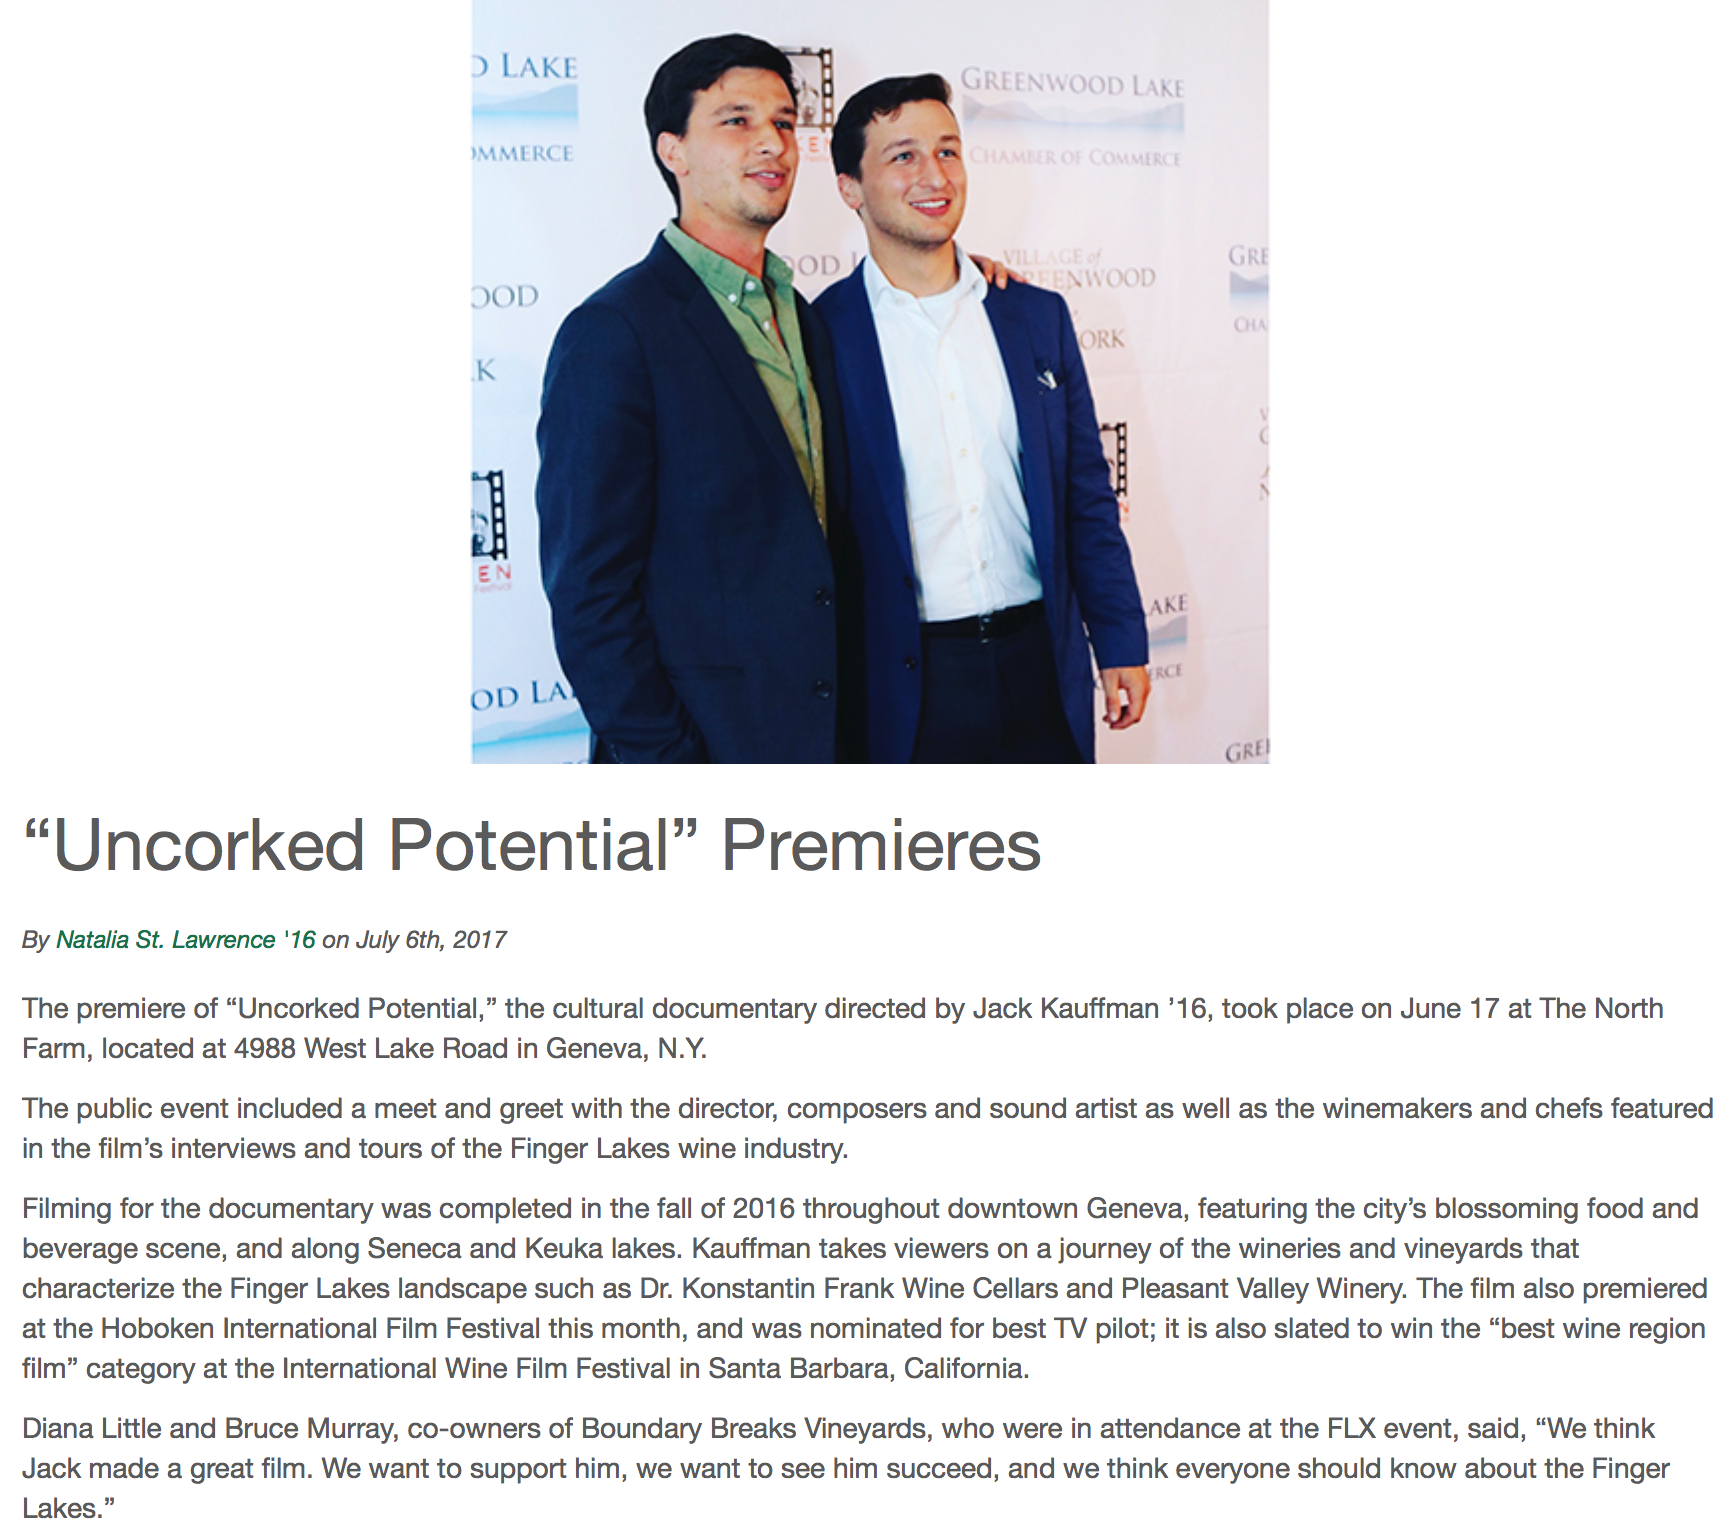 Director's Alma Mater Features Story - The director's alma mater, Hobart & William Smith Colleges, featured an article on Uncorked Potential following the June 17, 2017 premiere in Geneva, New York. Click here for the full article.